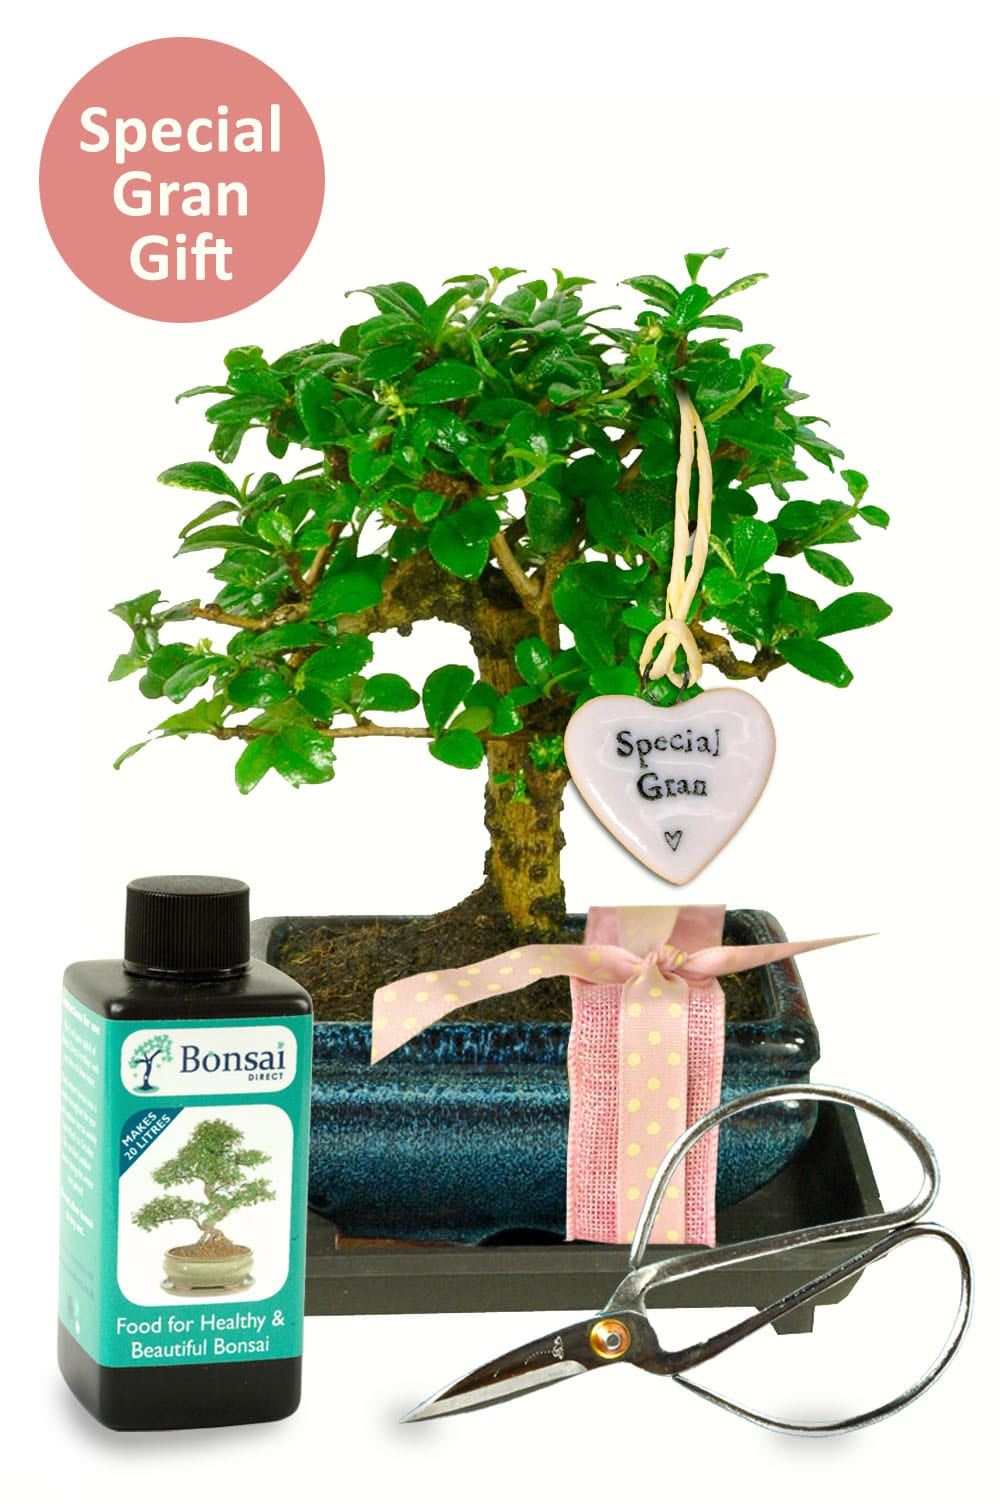 Grans birthday bonsai kit